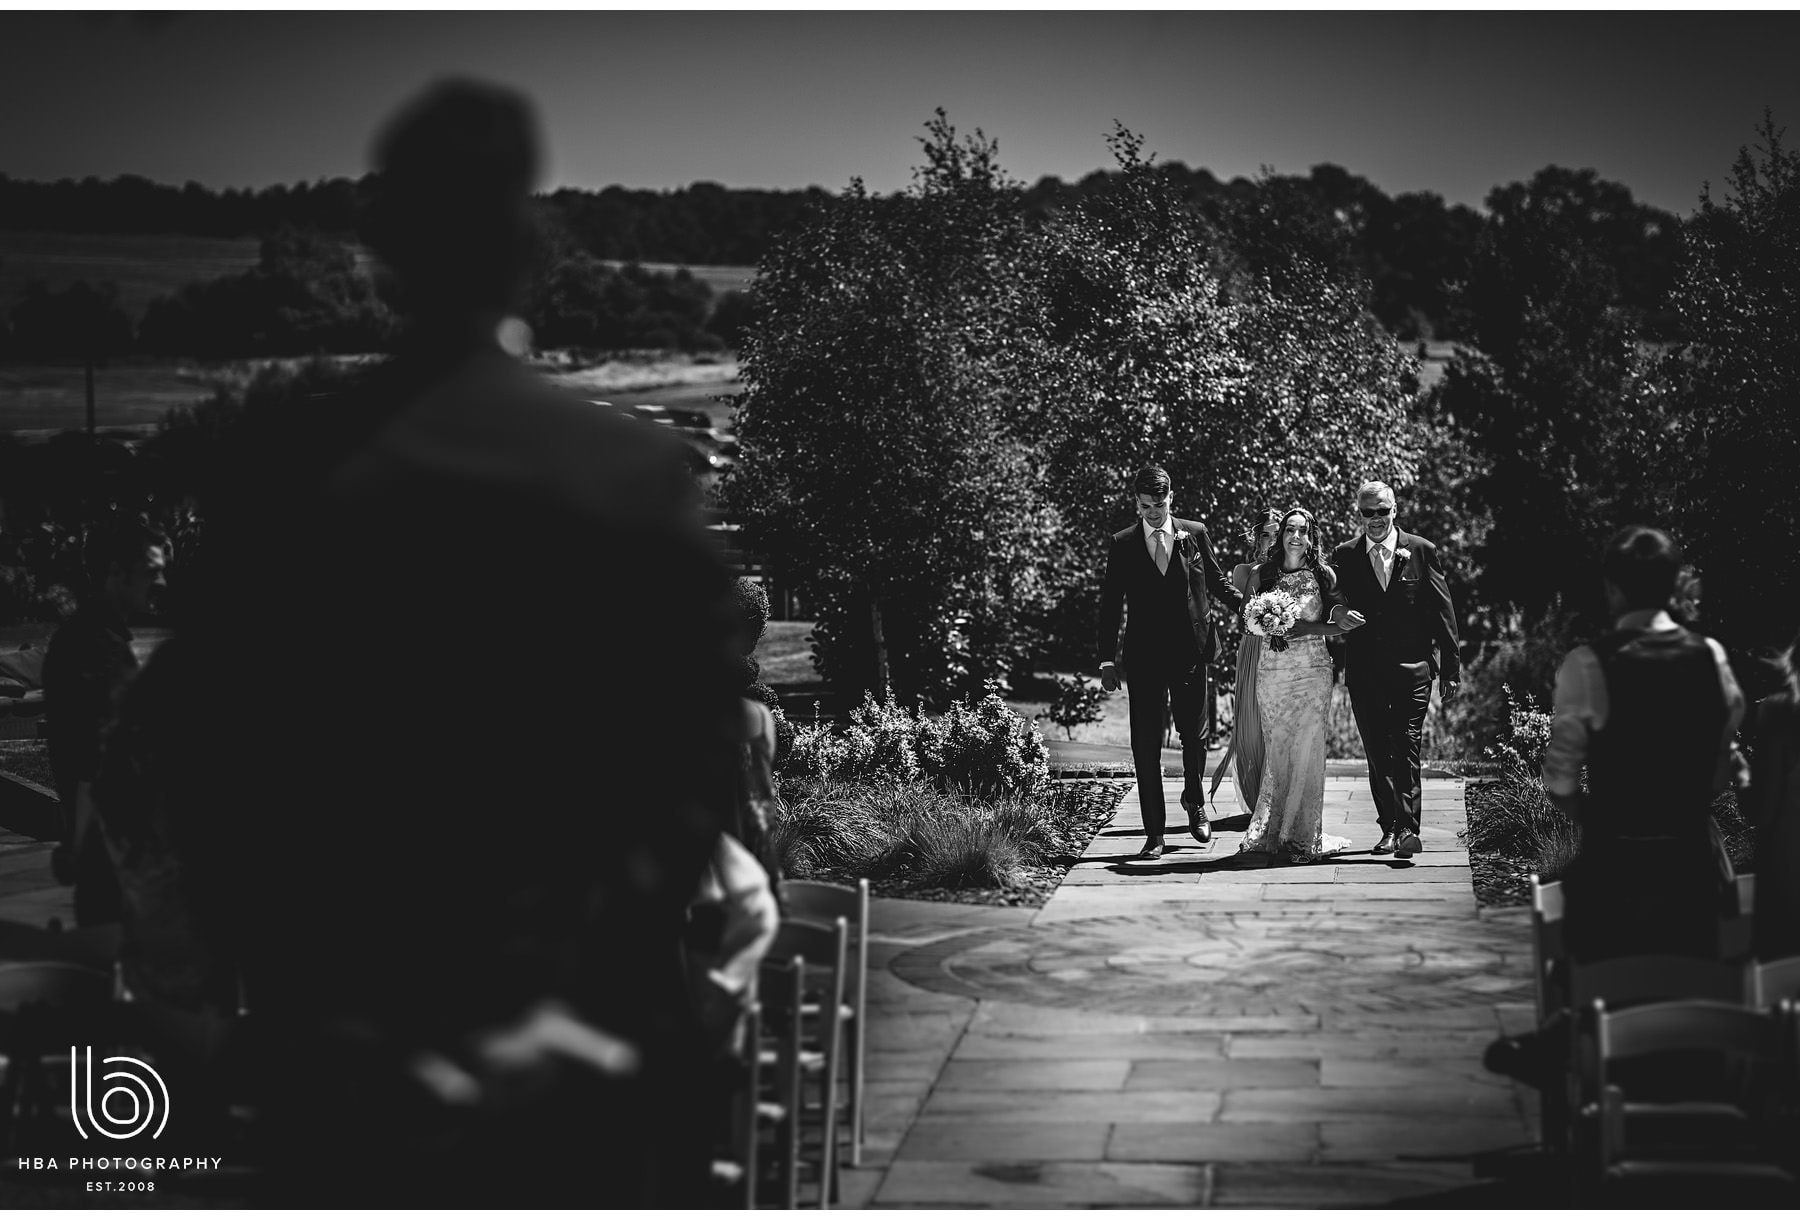 Aston_Marina_Wedding_Photography_in_Staffordshire_by_HBA_Photography